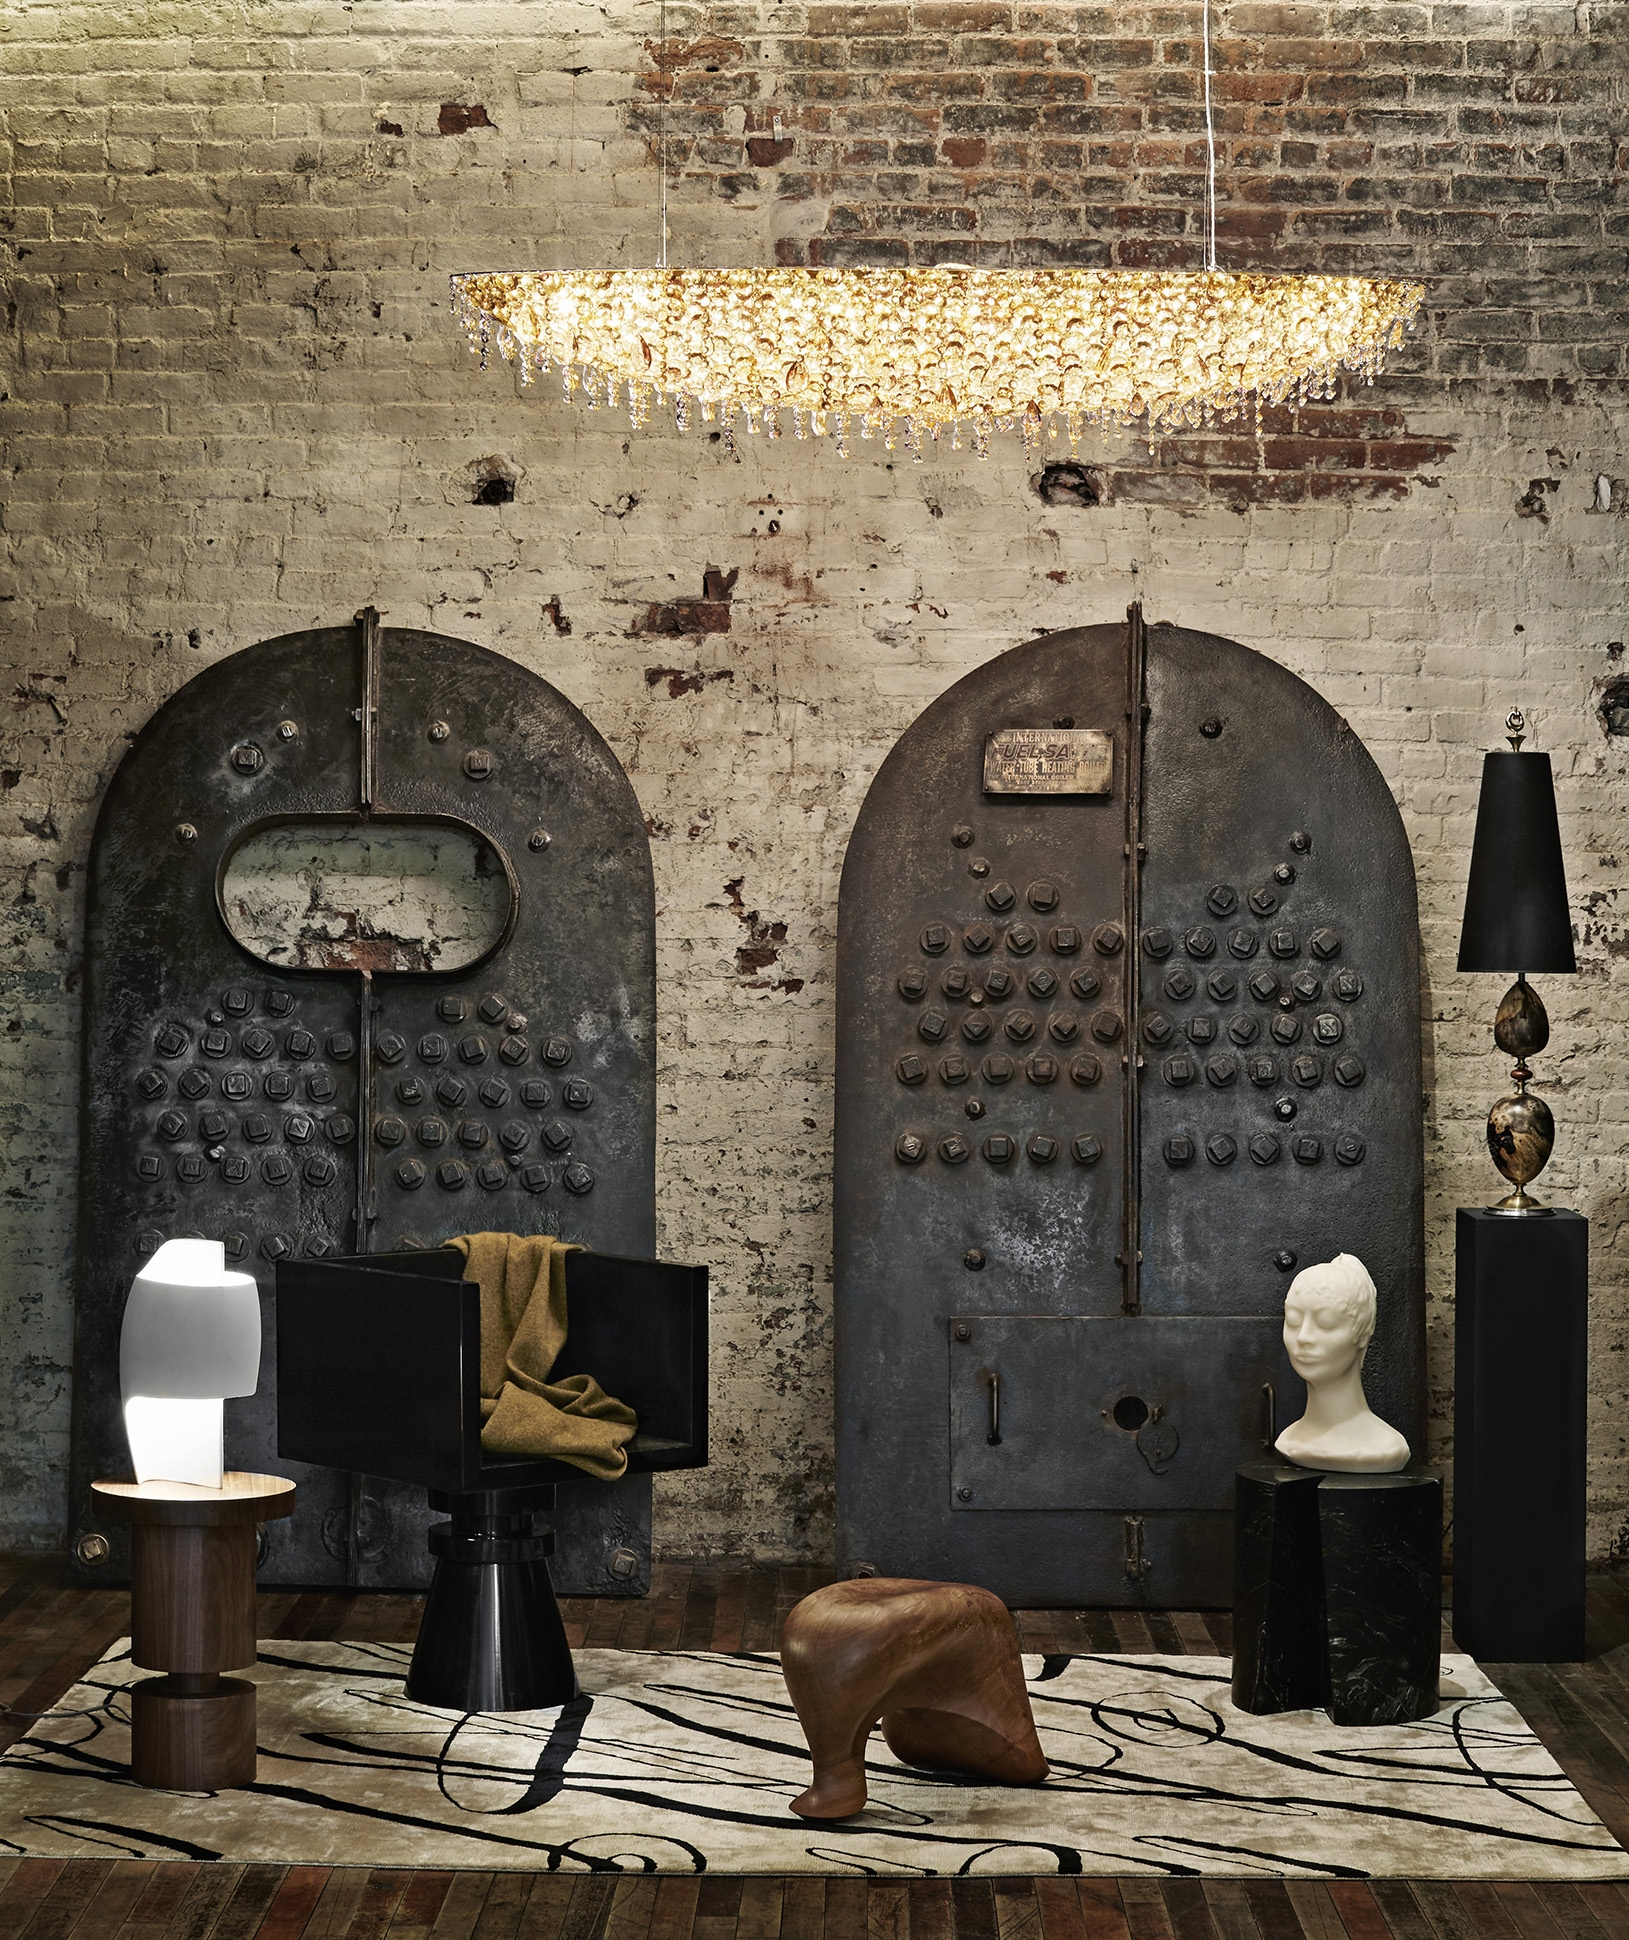 Les Ateliers Courbet lolli e memmoli anna karlin aldo bakker thierry dreyfus serge poliakoff silk rugs furniture lighting home accessories kriest